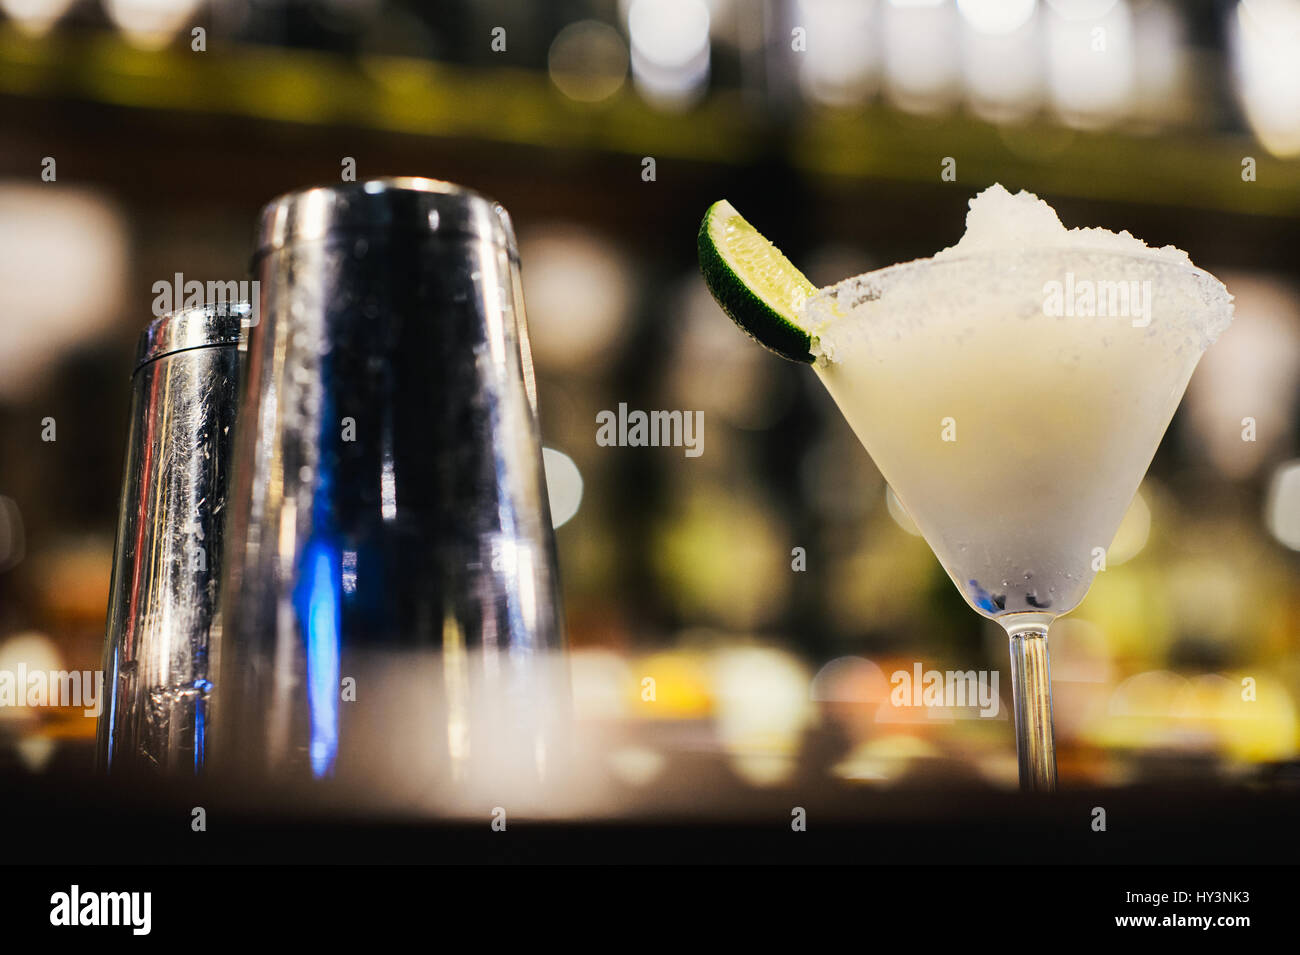 Glass of Margarita Cocktail on Crushed Ice - Stock Image